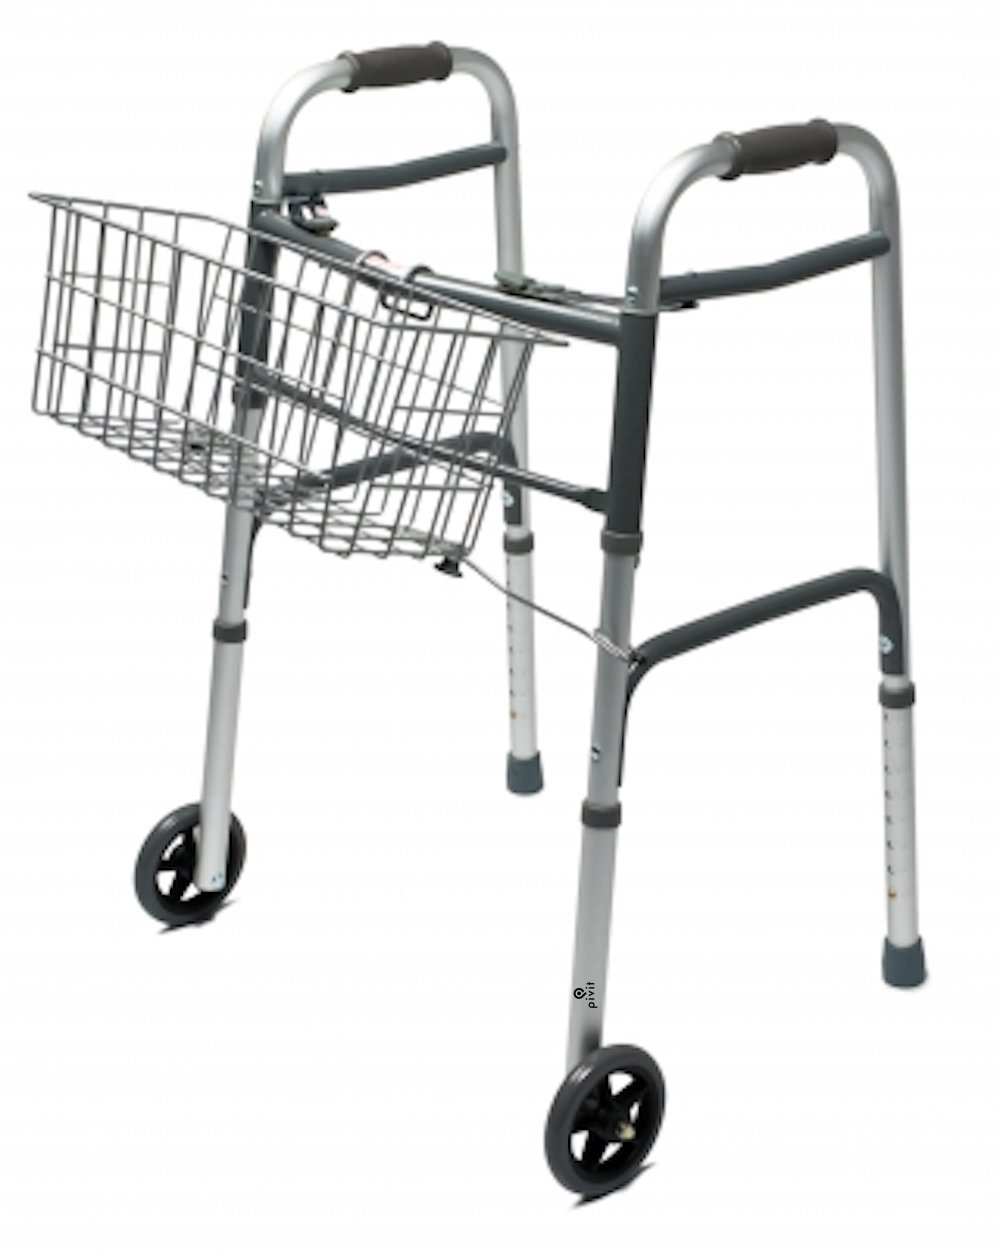 Pivit Snap-On Walker Basket | Keep Your Hands Free So You Can Shop Clean and Carry Personal Belongings | No Tools Needed! Place Inside Or Outside of Your Walker | Fits Any Brand Walker with 1'' Tubing